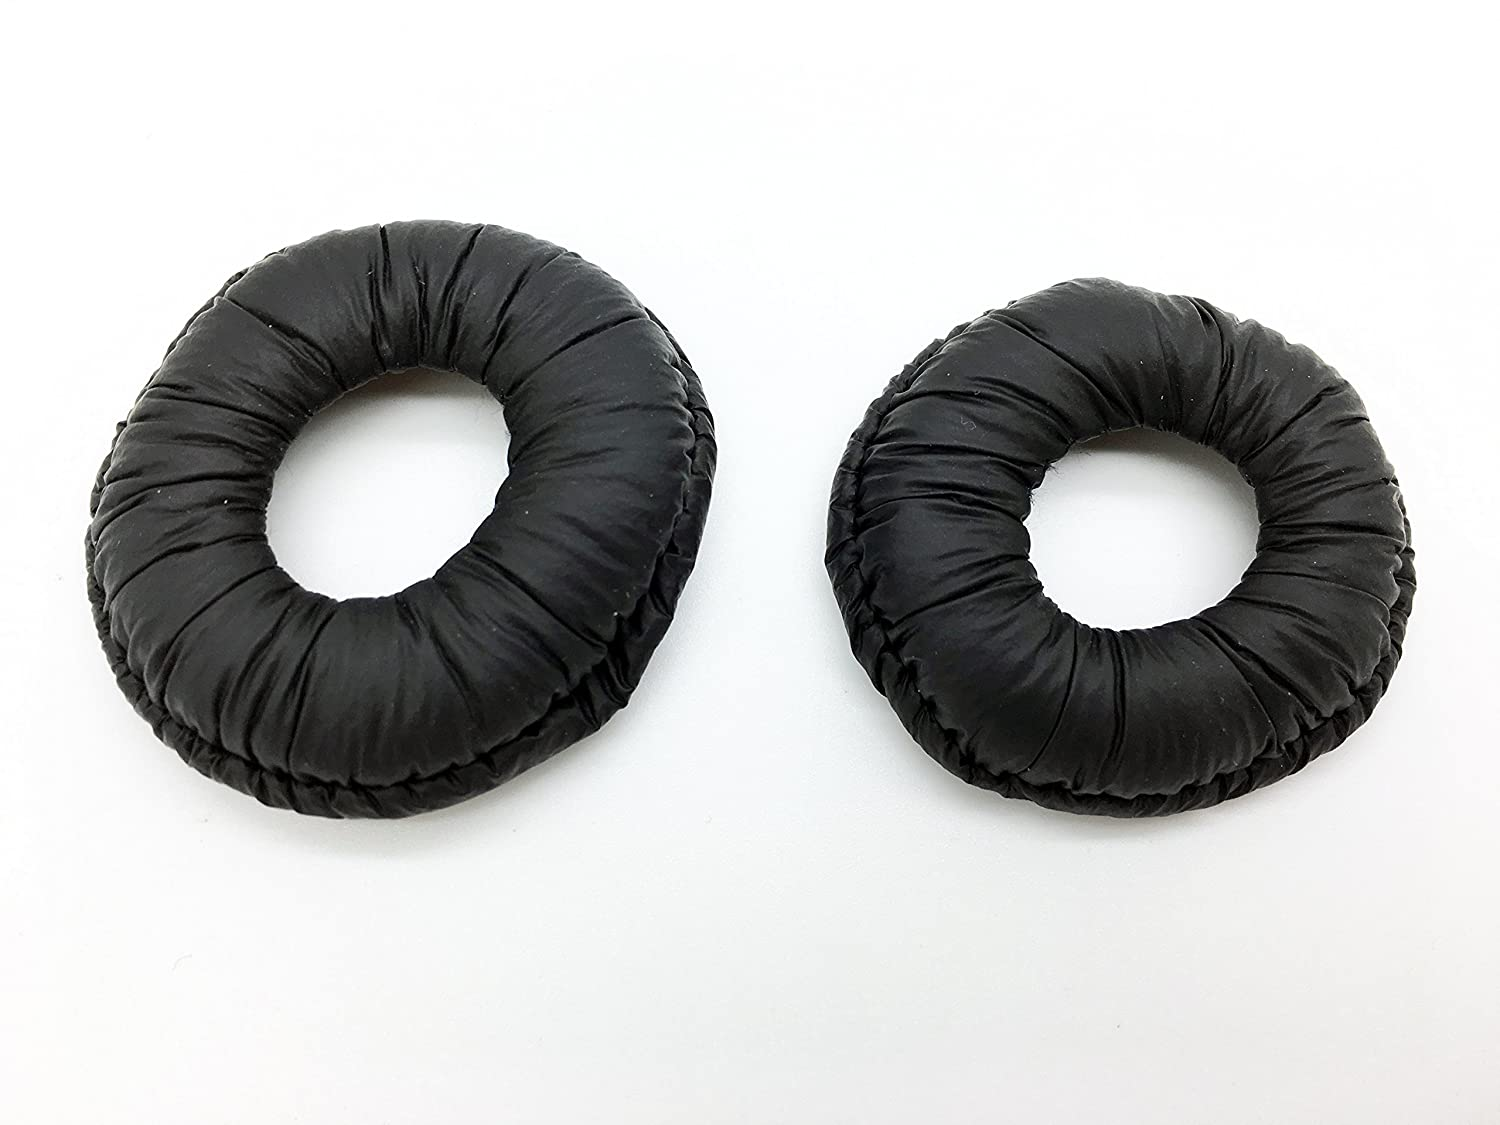 avimabasics 1-pair Leatherette耳クッションwithoutプラスチックリングfor Plantronics cs50 cs55 cs55h h141 h141 N p141 p141 N m170 m175 ct12 ct14 s10 t10 t20   B071ZWF7T9